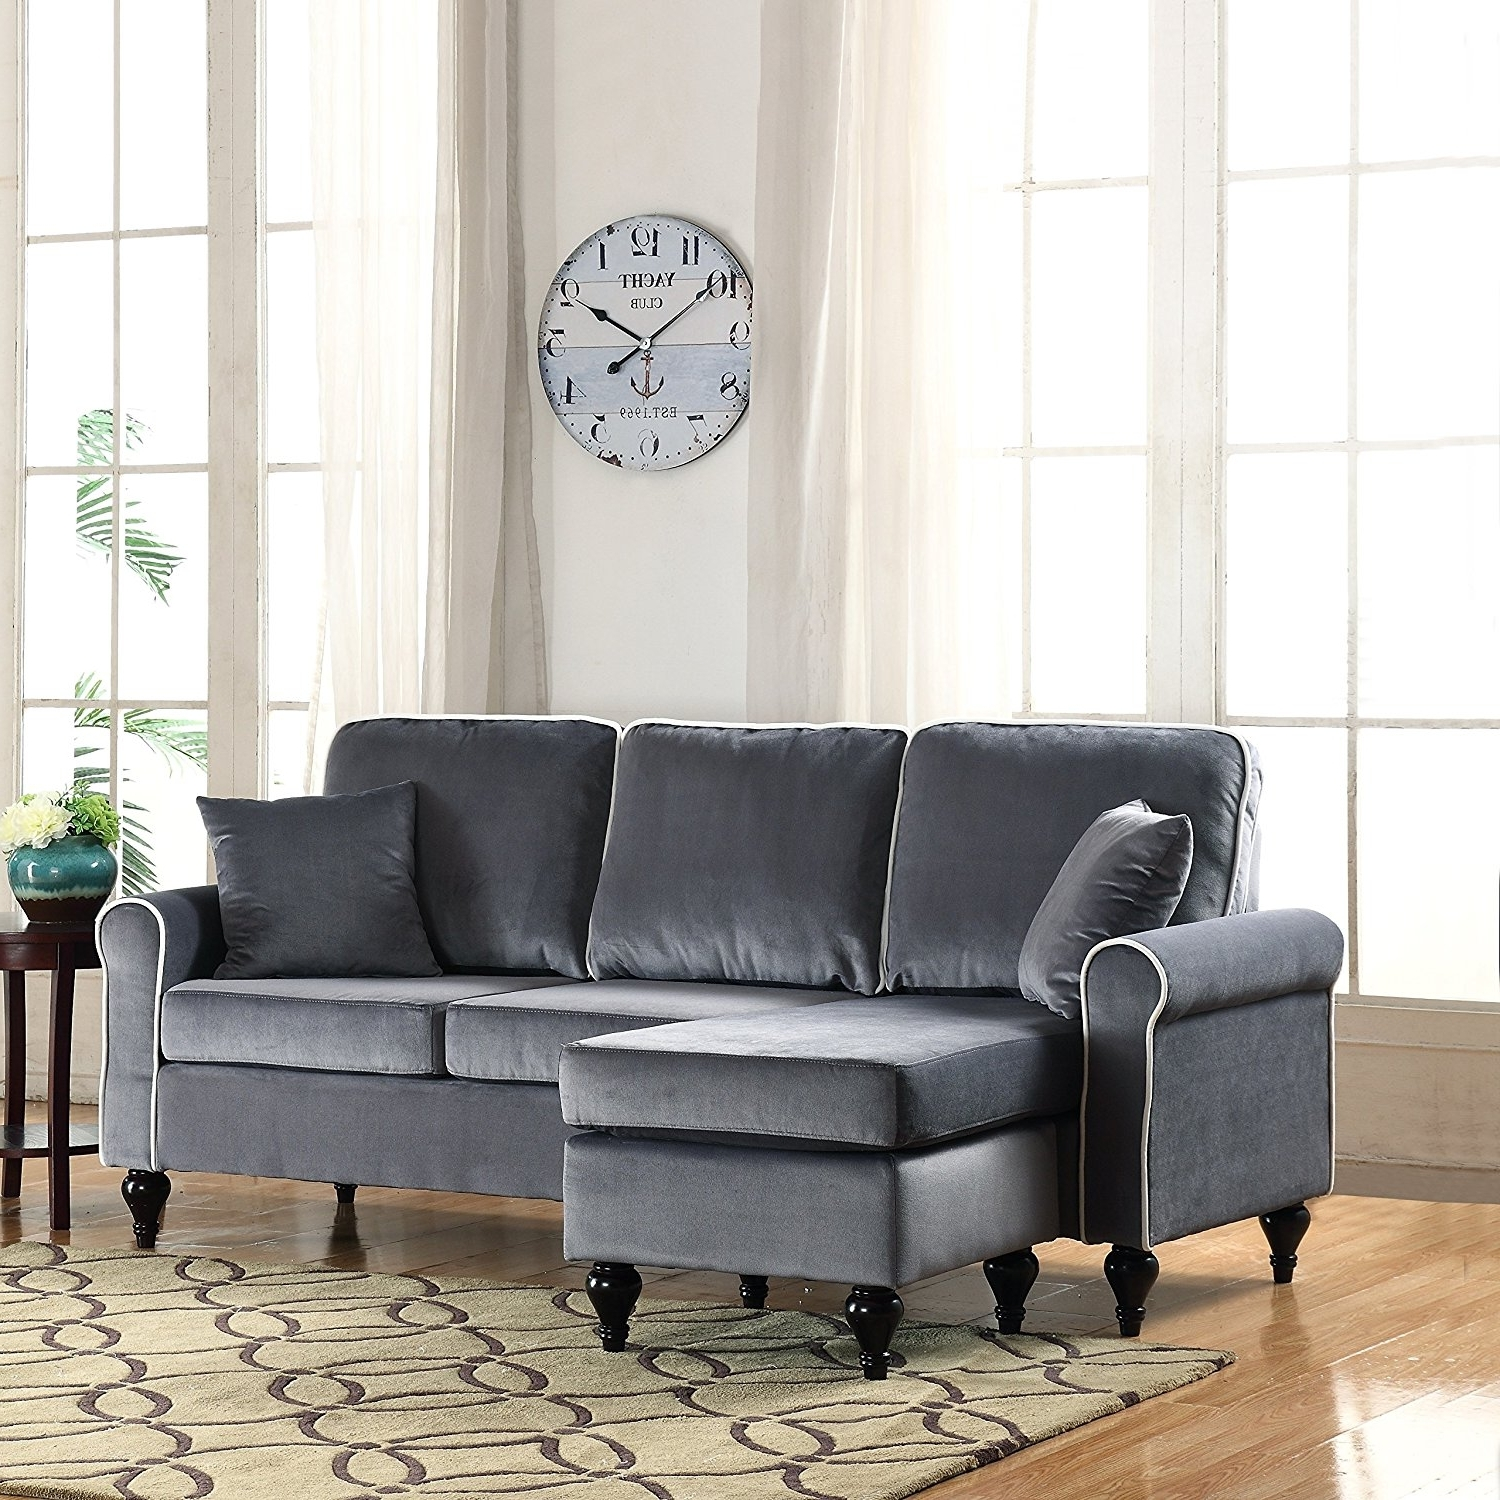 Velvet Sectional Sofas With Chaise throughout Most Recently Released Amazon: Classic And Traditional Small Space Velvet Sectional